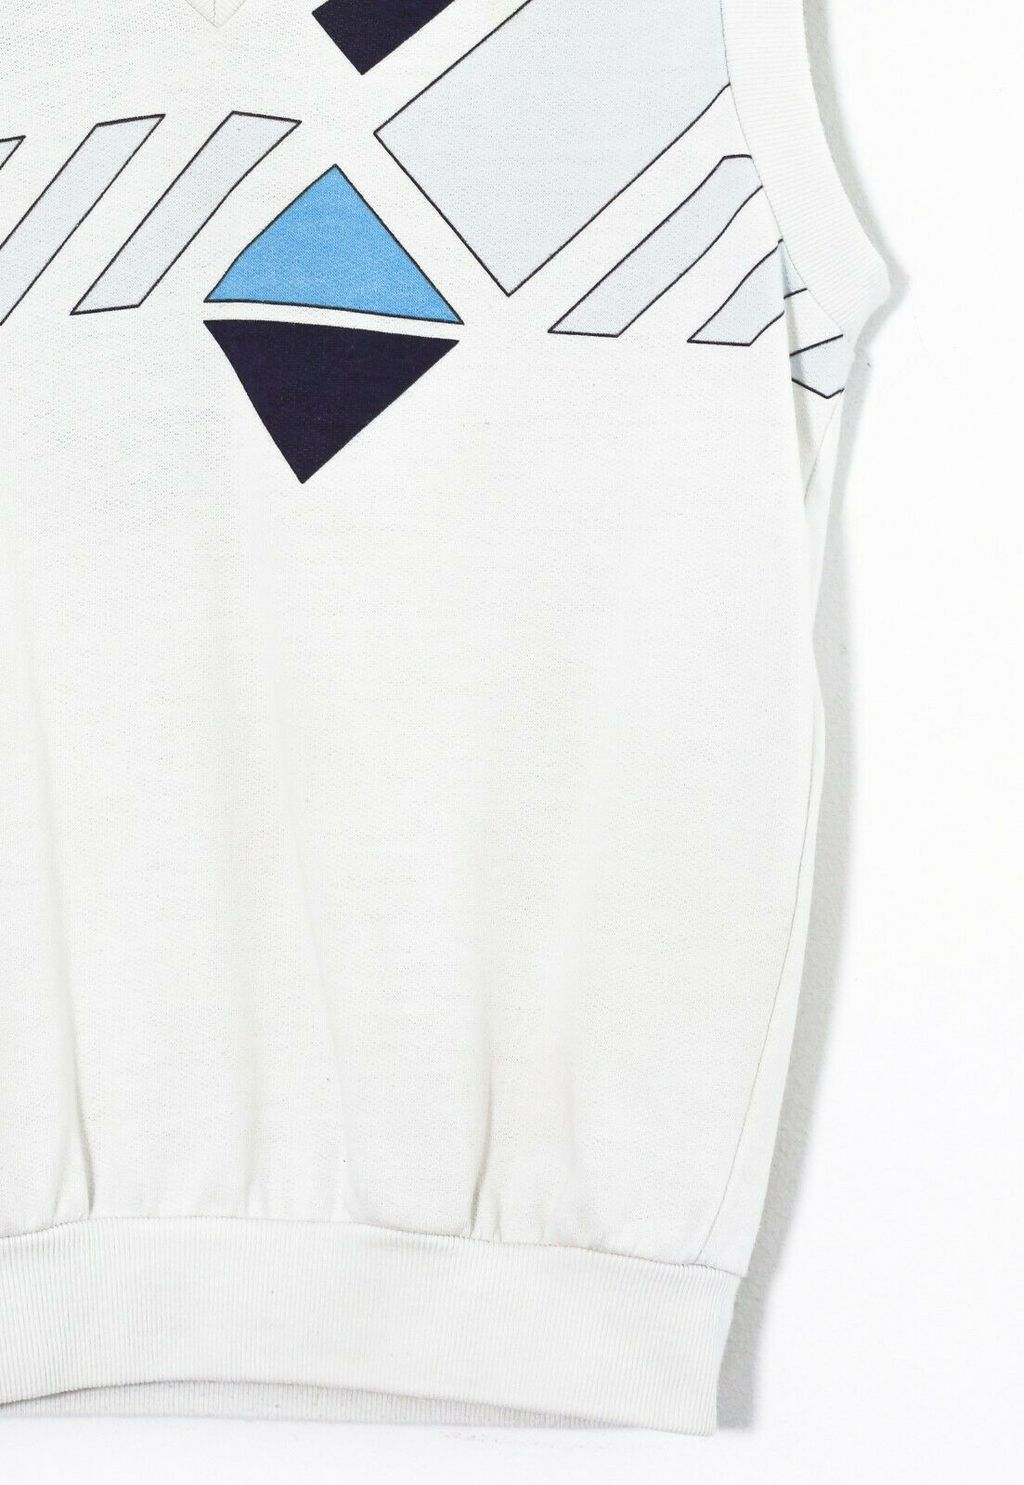 Винтажная жилетка 80s ADIDAS ORIGINALS Ivan Lendl Vest Gilet Top White